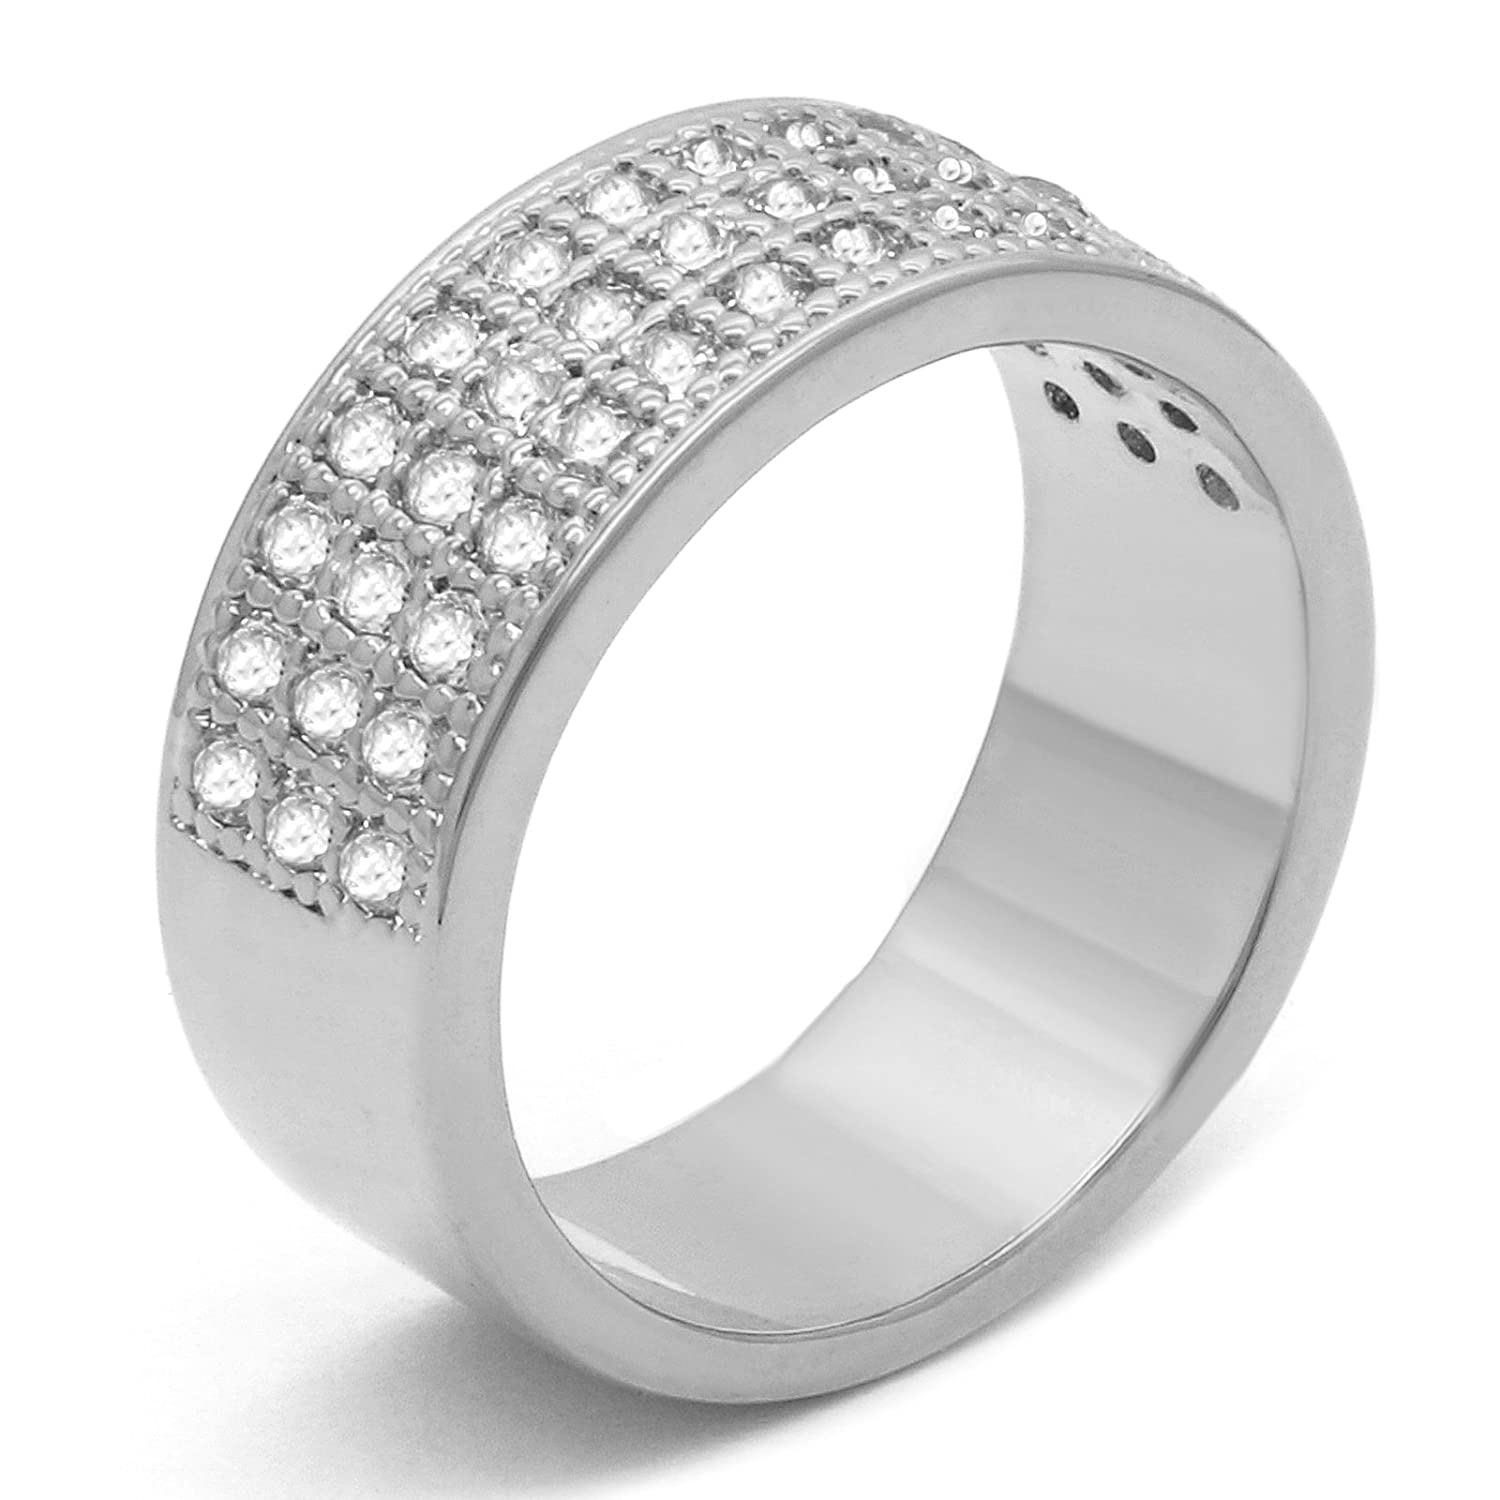 5a1645e6b0b06f Men's 14k White Gold Plated Hip Hop ICED OUT CZ Band 3 ROW Round Bling  Style Pinky Ring Size 7 8 9 10 11 12 Amazon.com